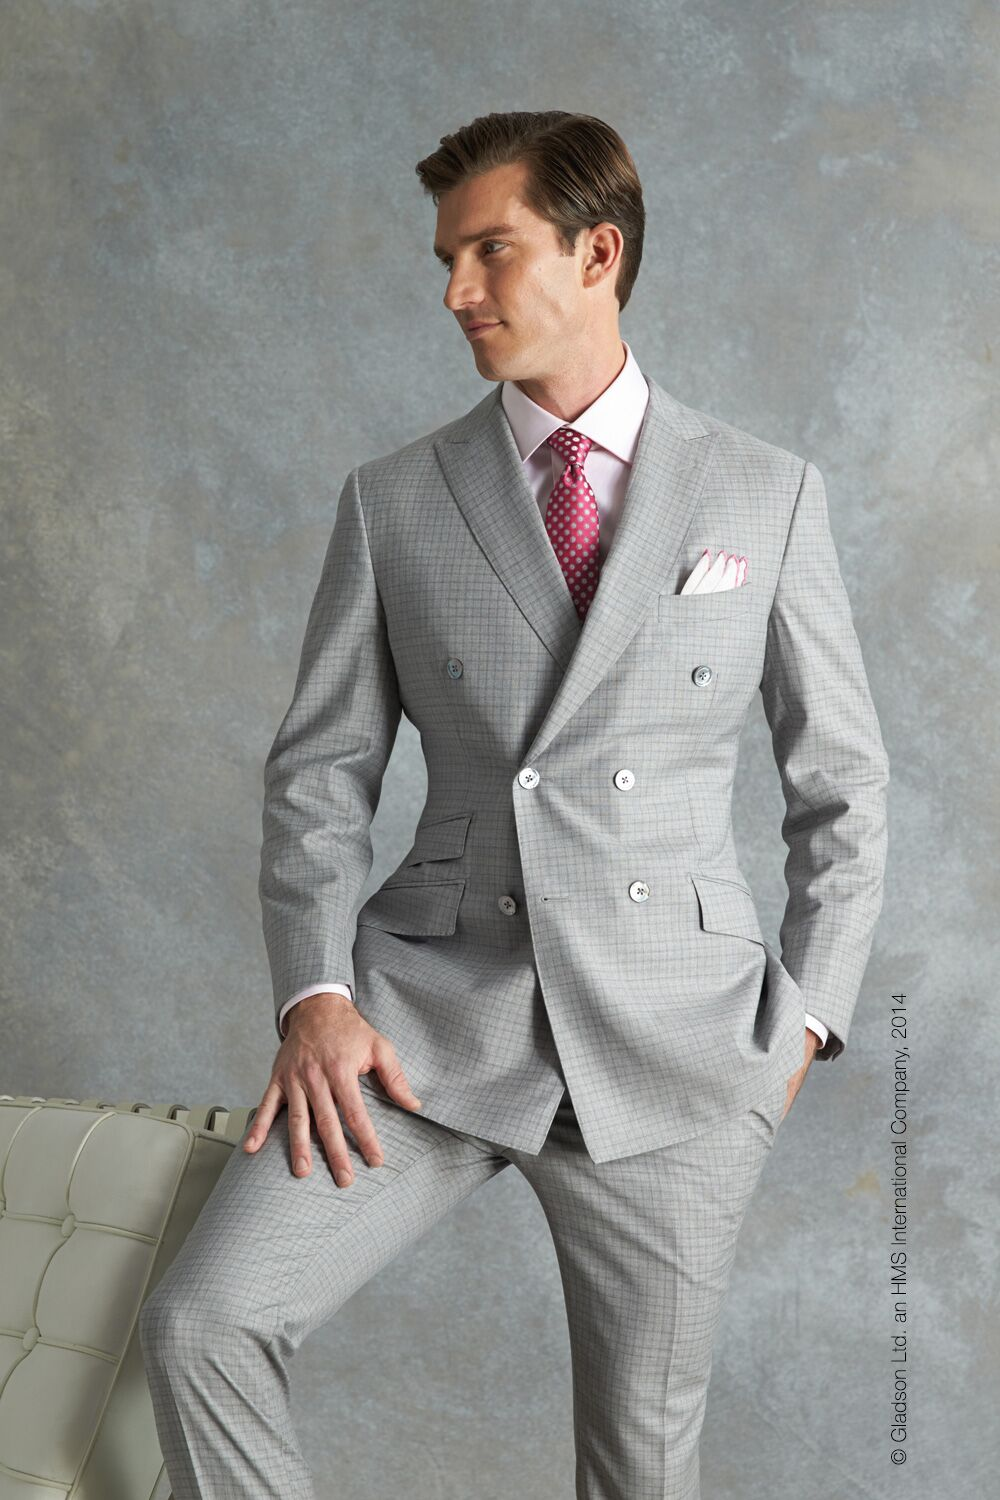 London Street Alazar Suit.jpg